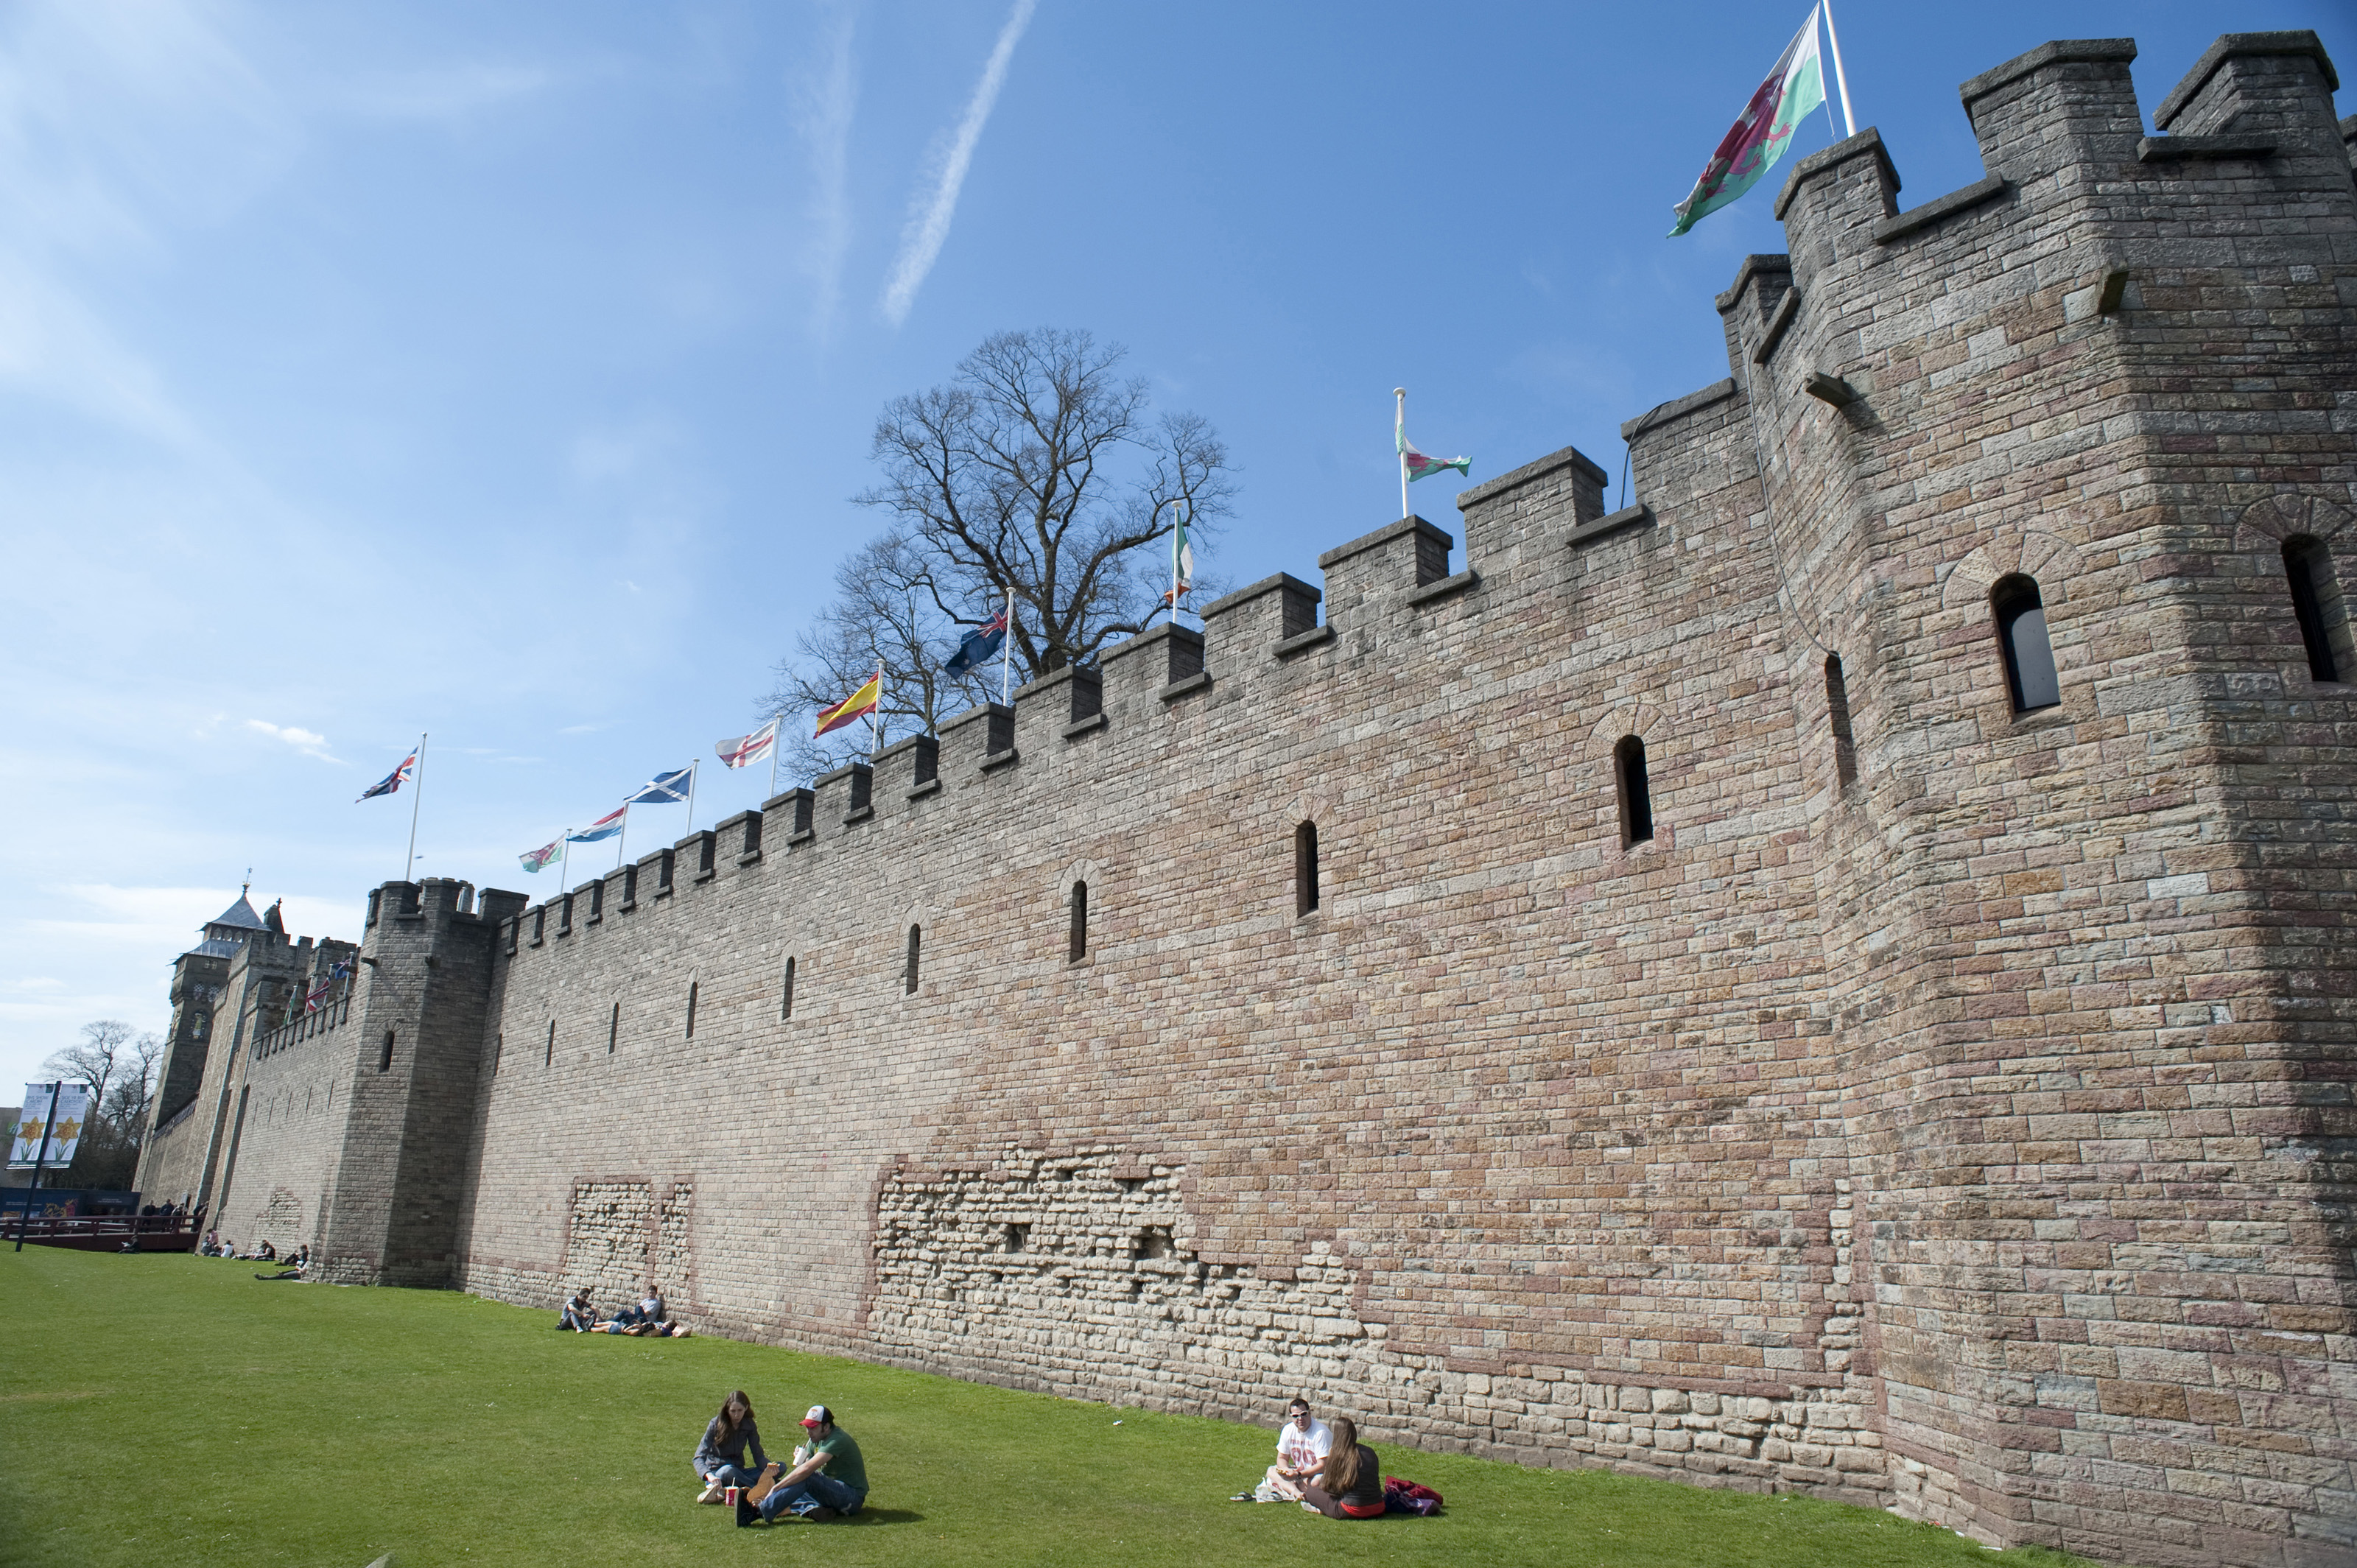 Cardiff Castle walls-7063 | Stockarch Free Stock Photos